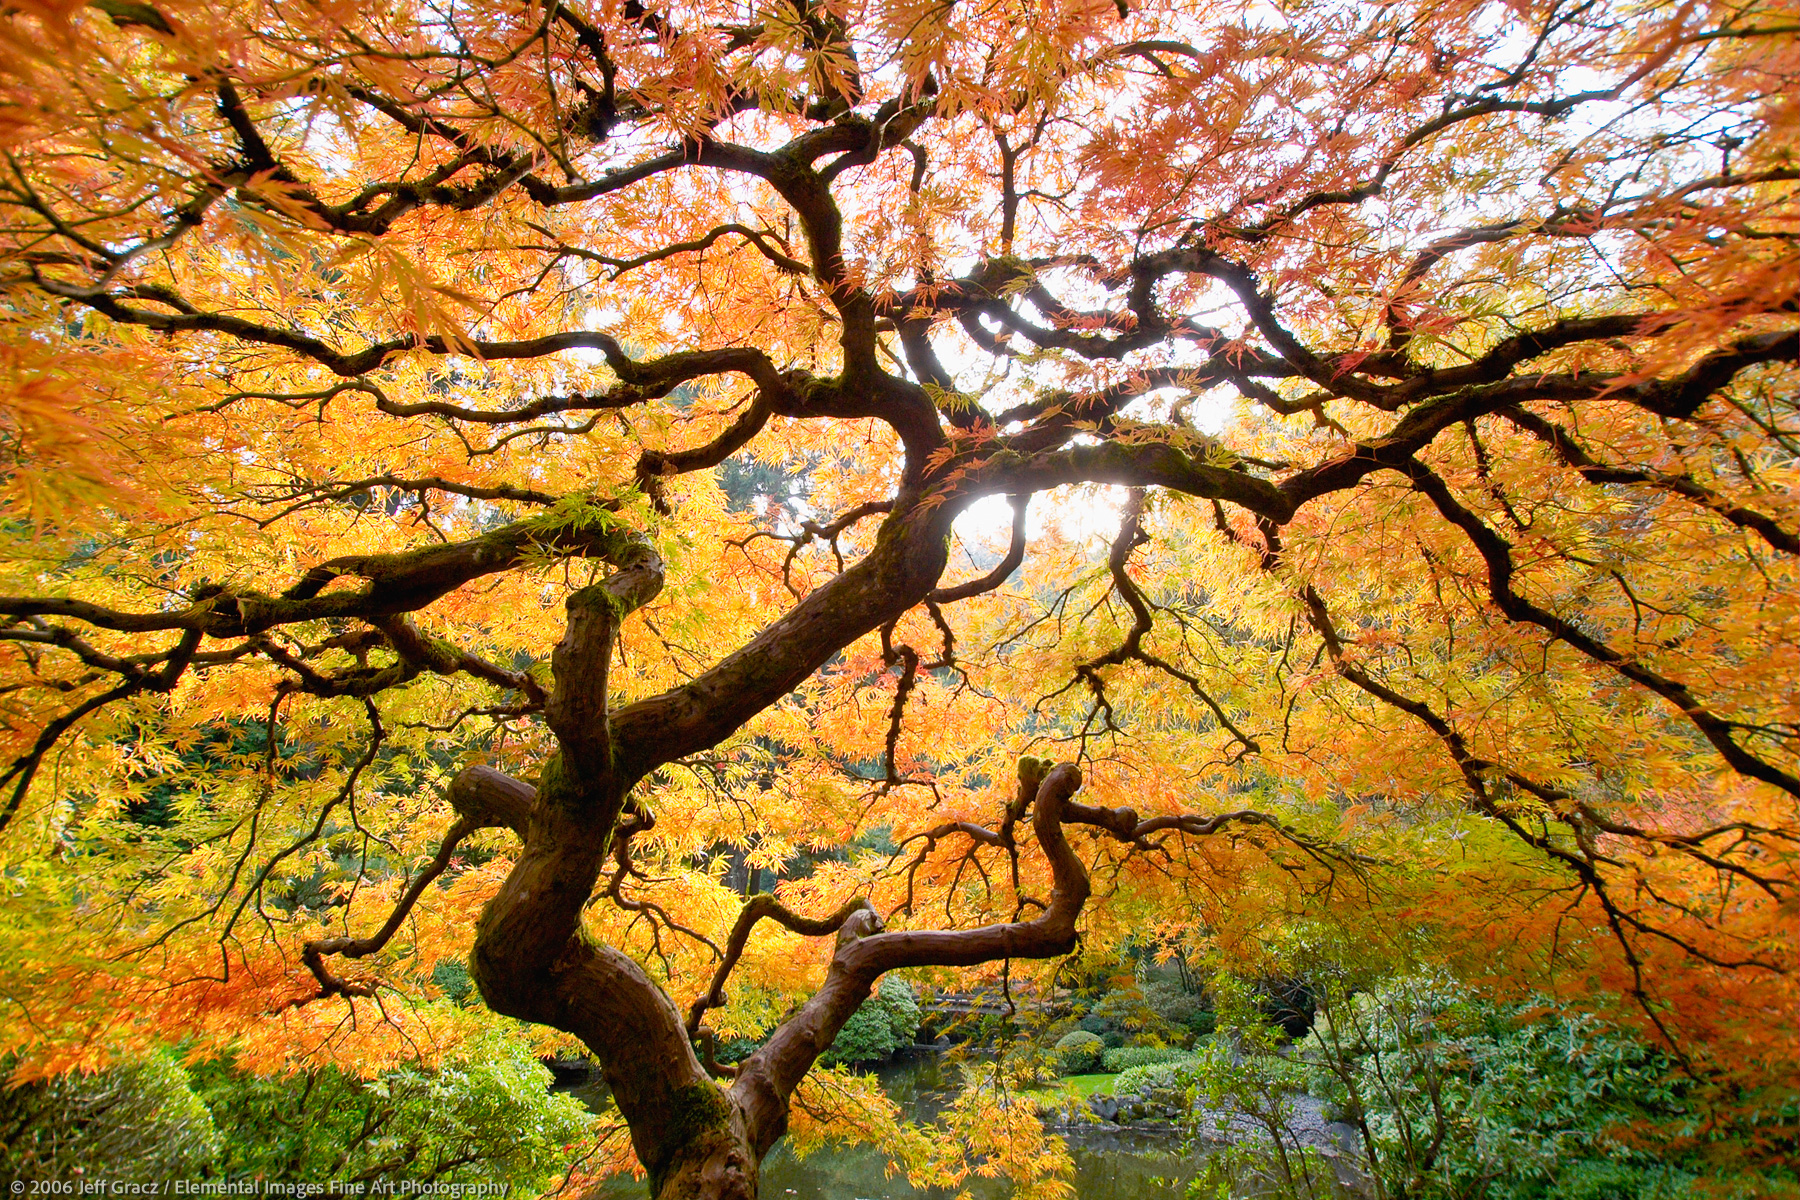 autumn japanese maple | portland | OR | USA - © © 2006 Jeff Gracz / Elemental Images Fine Art Photography - All Rights Reserved Worldwide